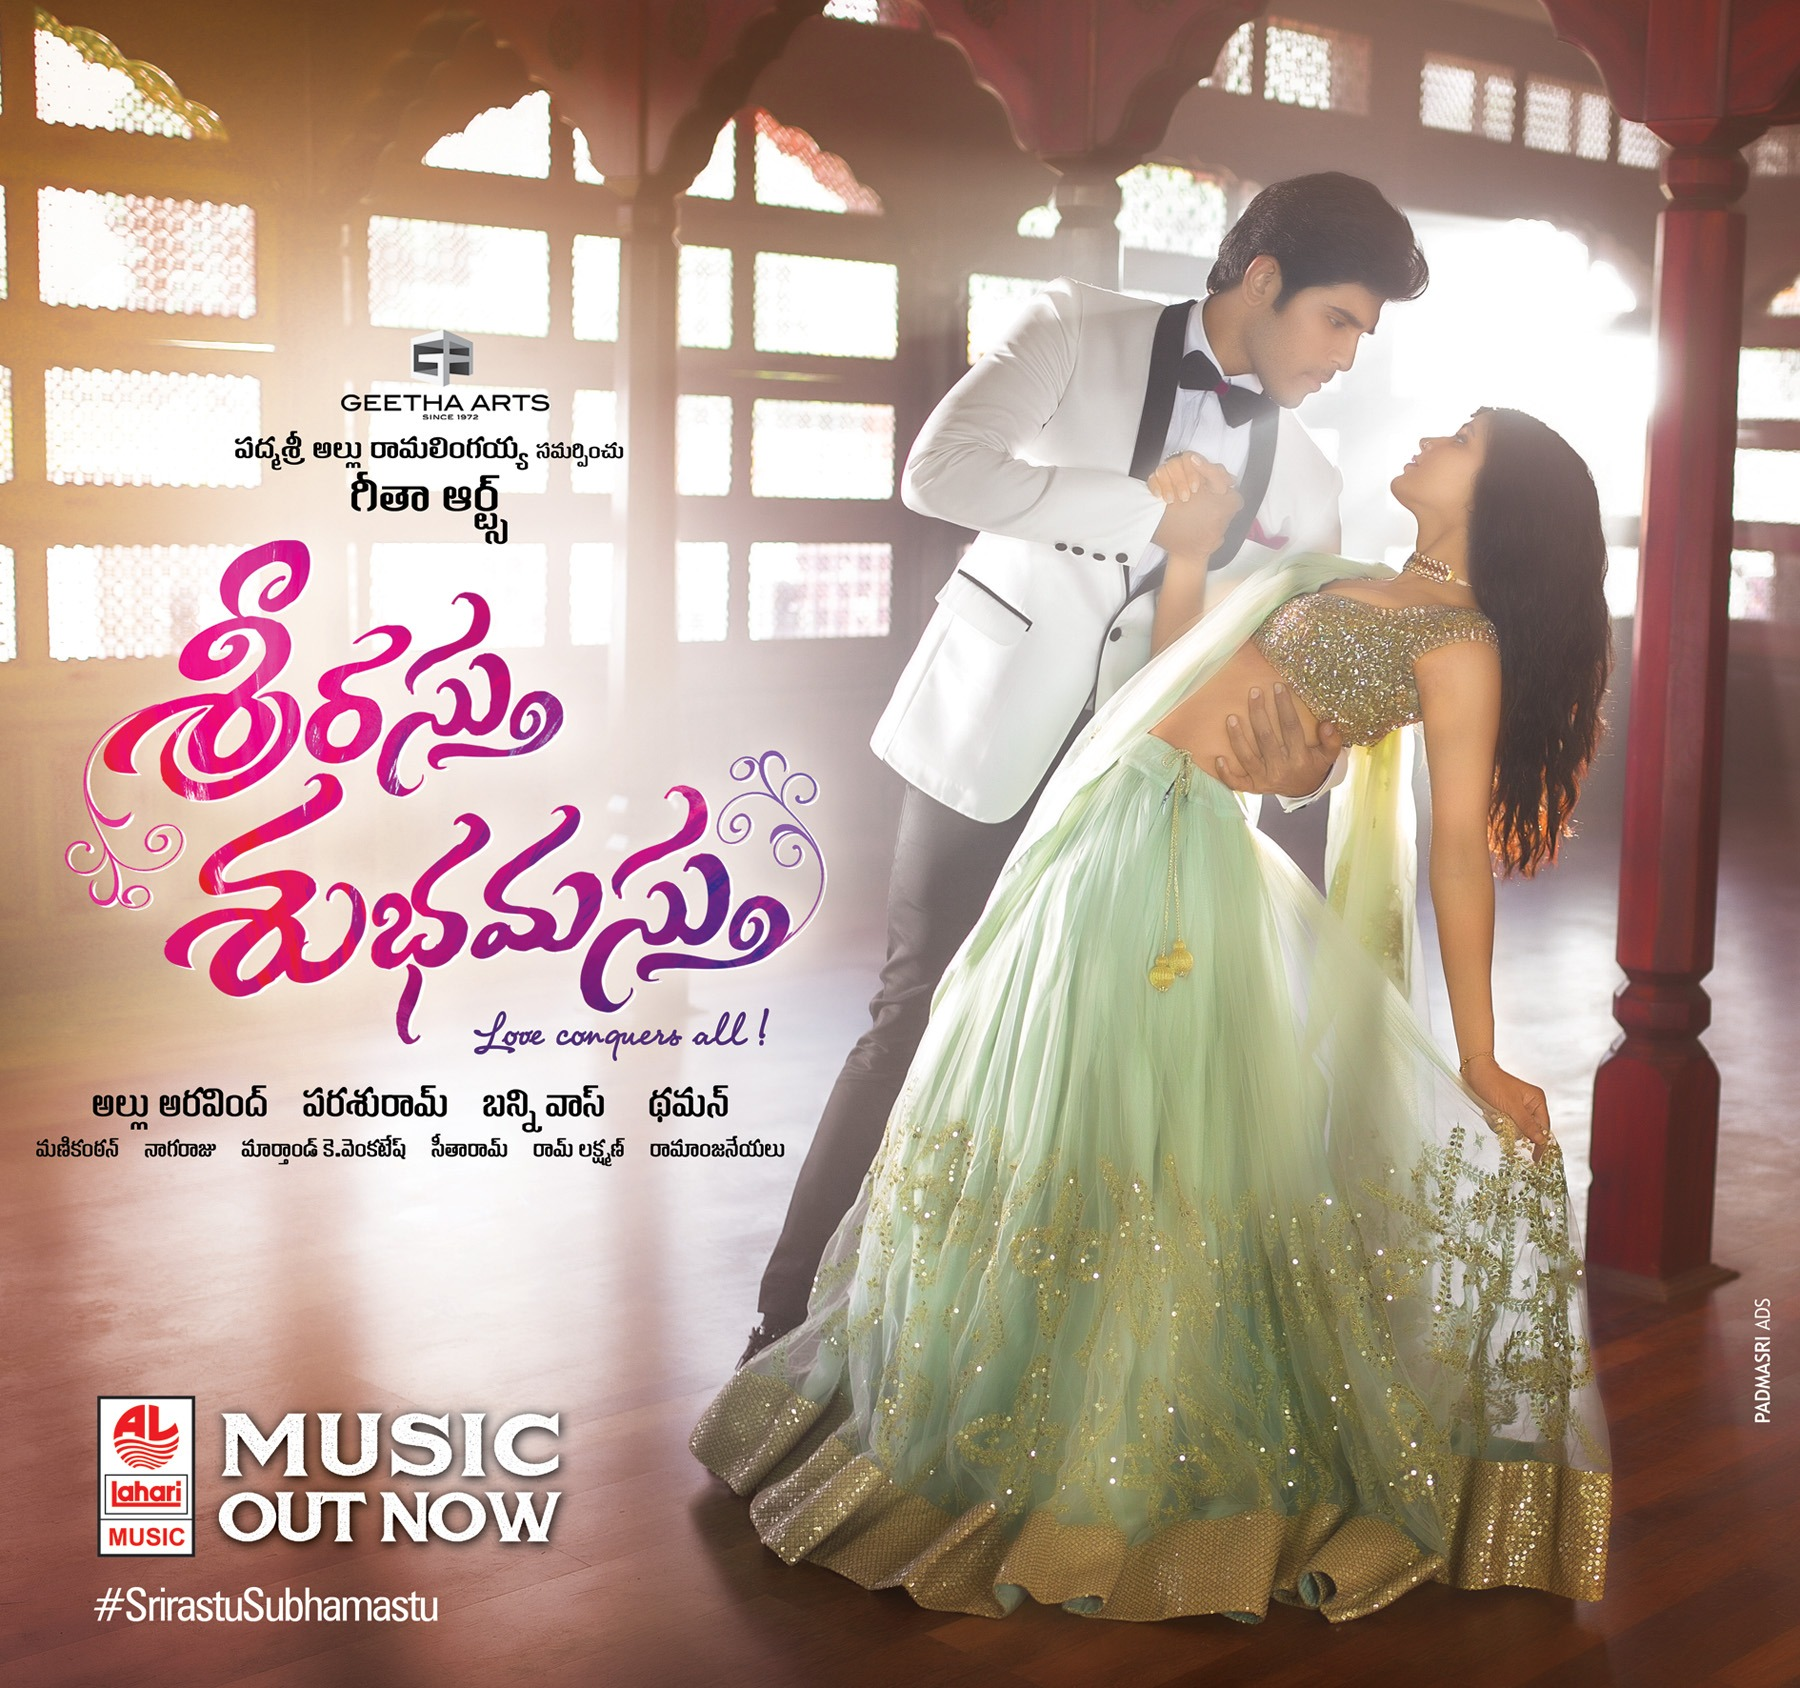 Srirastu Subhamastu Movie Review